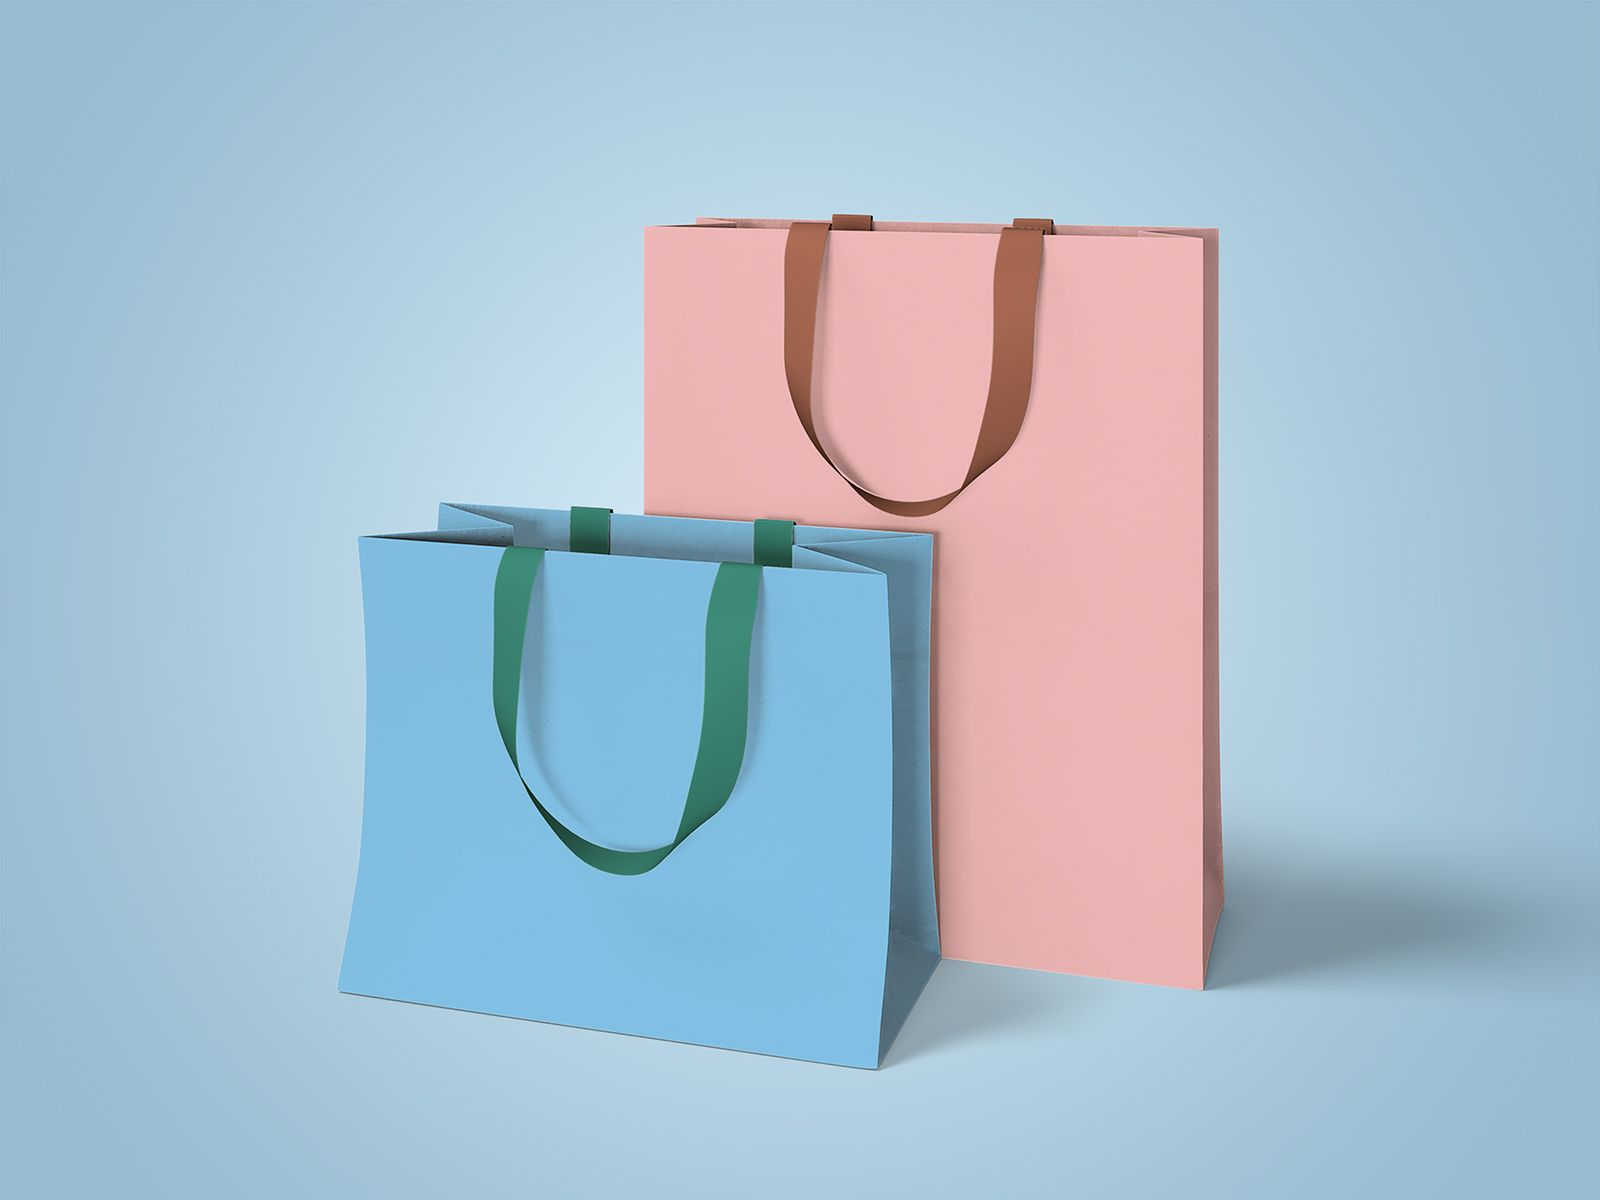 Download Luxury Box And Bag Mockups Bag Mockup Luxury Boxes Free Packaging Mockup